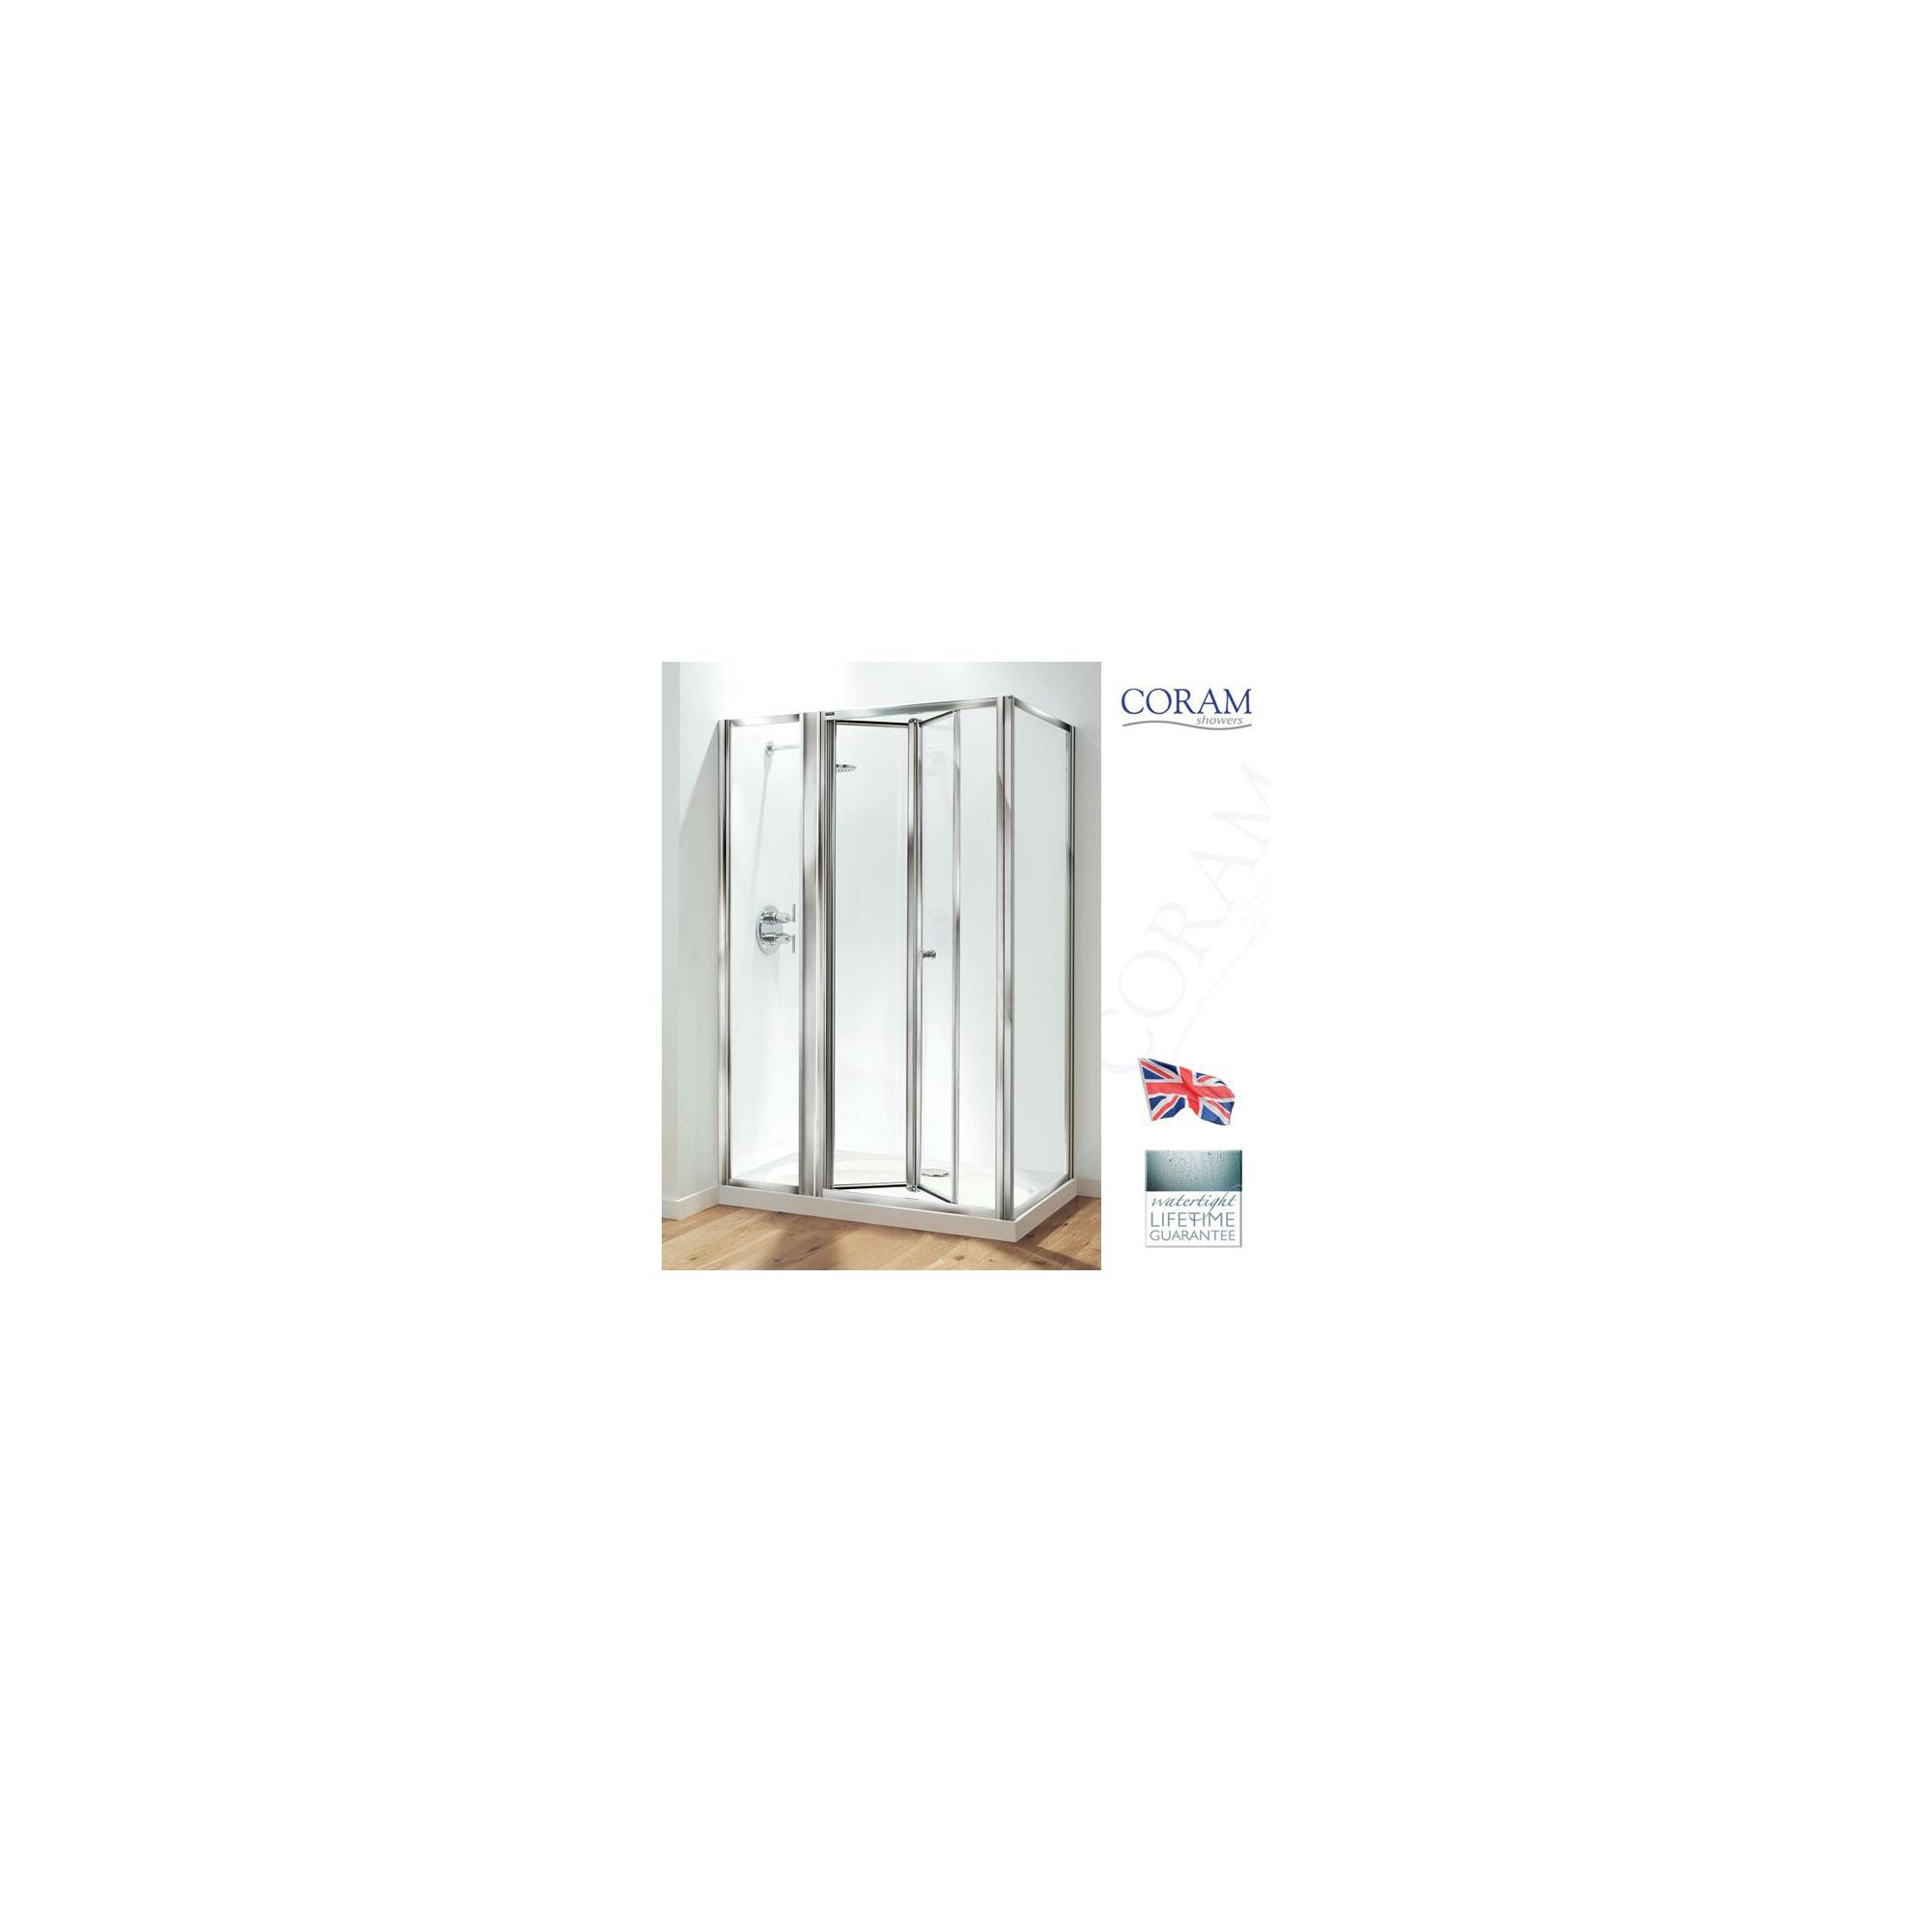 Coram Optima Inline Bi-Fold Door Shower Enclosure, 1200mm x 760mm, Low Profile Tray, 6mm Glass at Tesco Direct